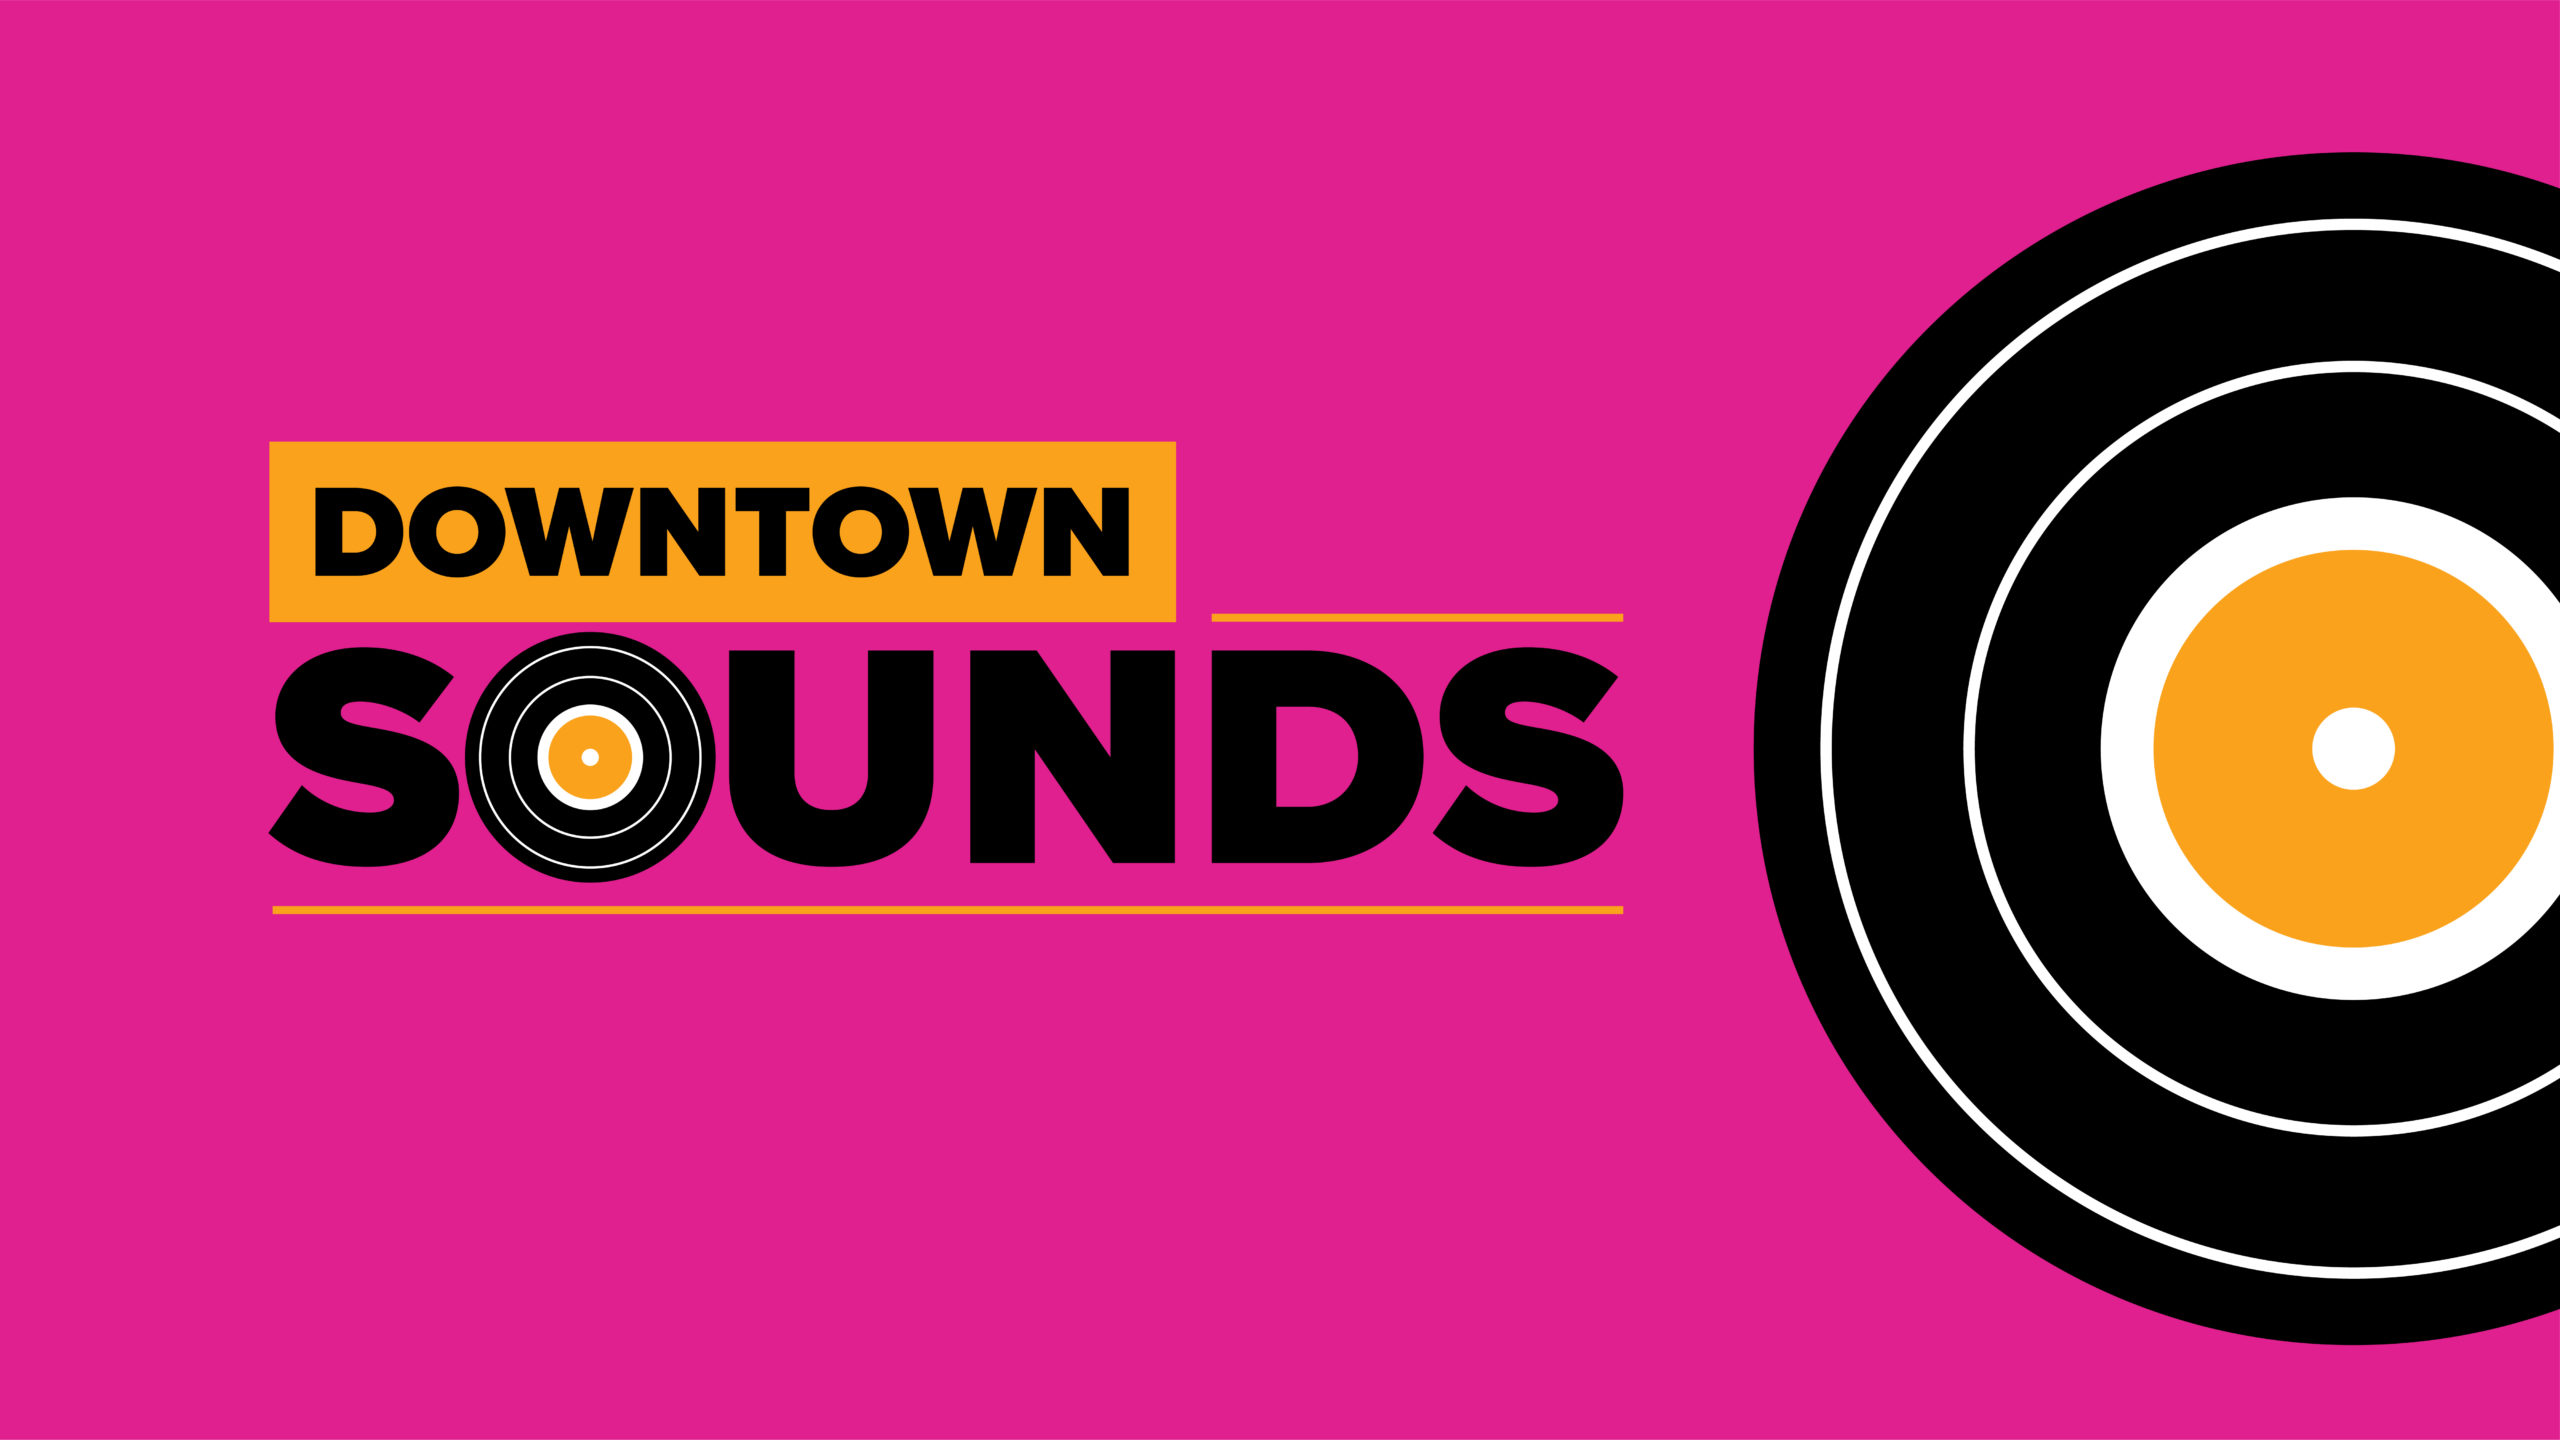 Downtown Sounds